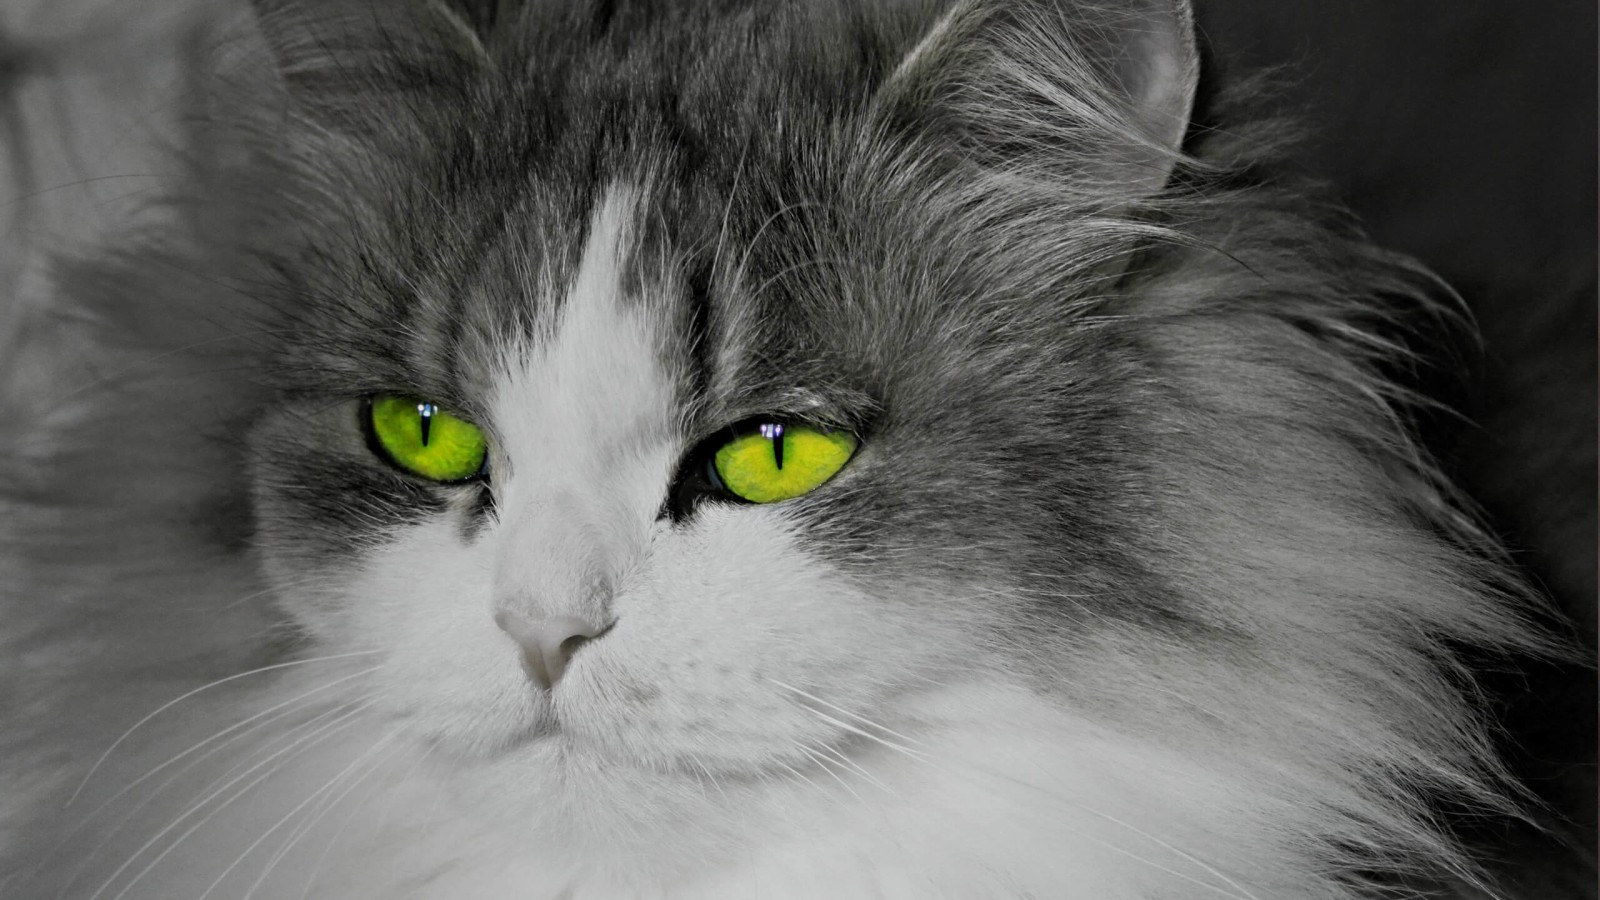 Cat With Stunningly Green Eyes Wallpaper for Desktop 1600x900